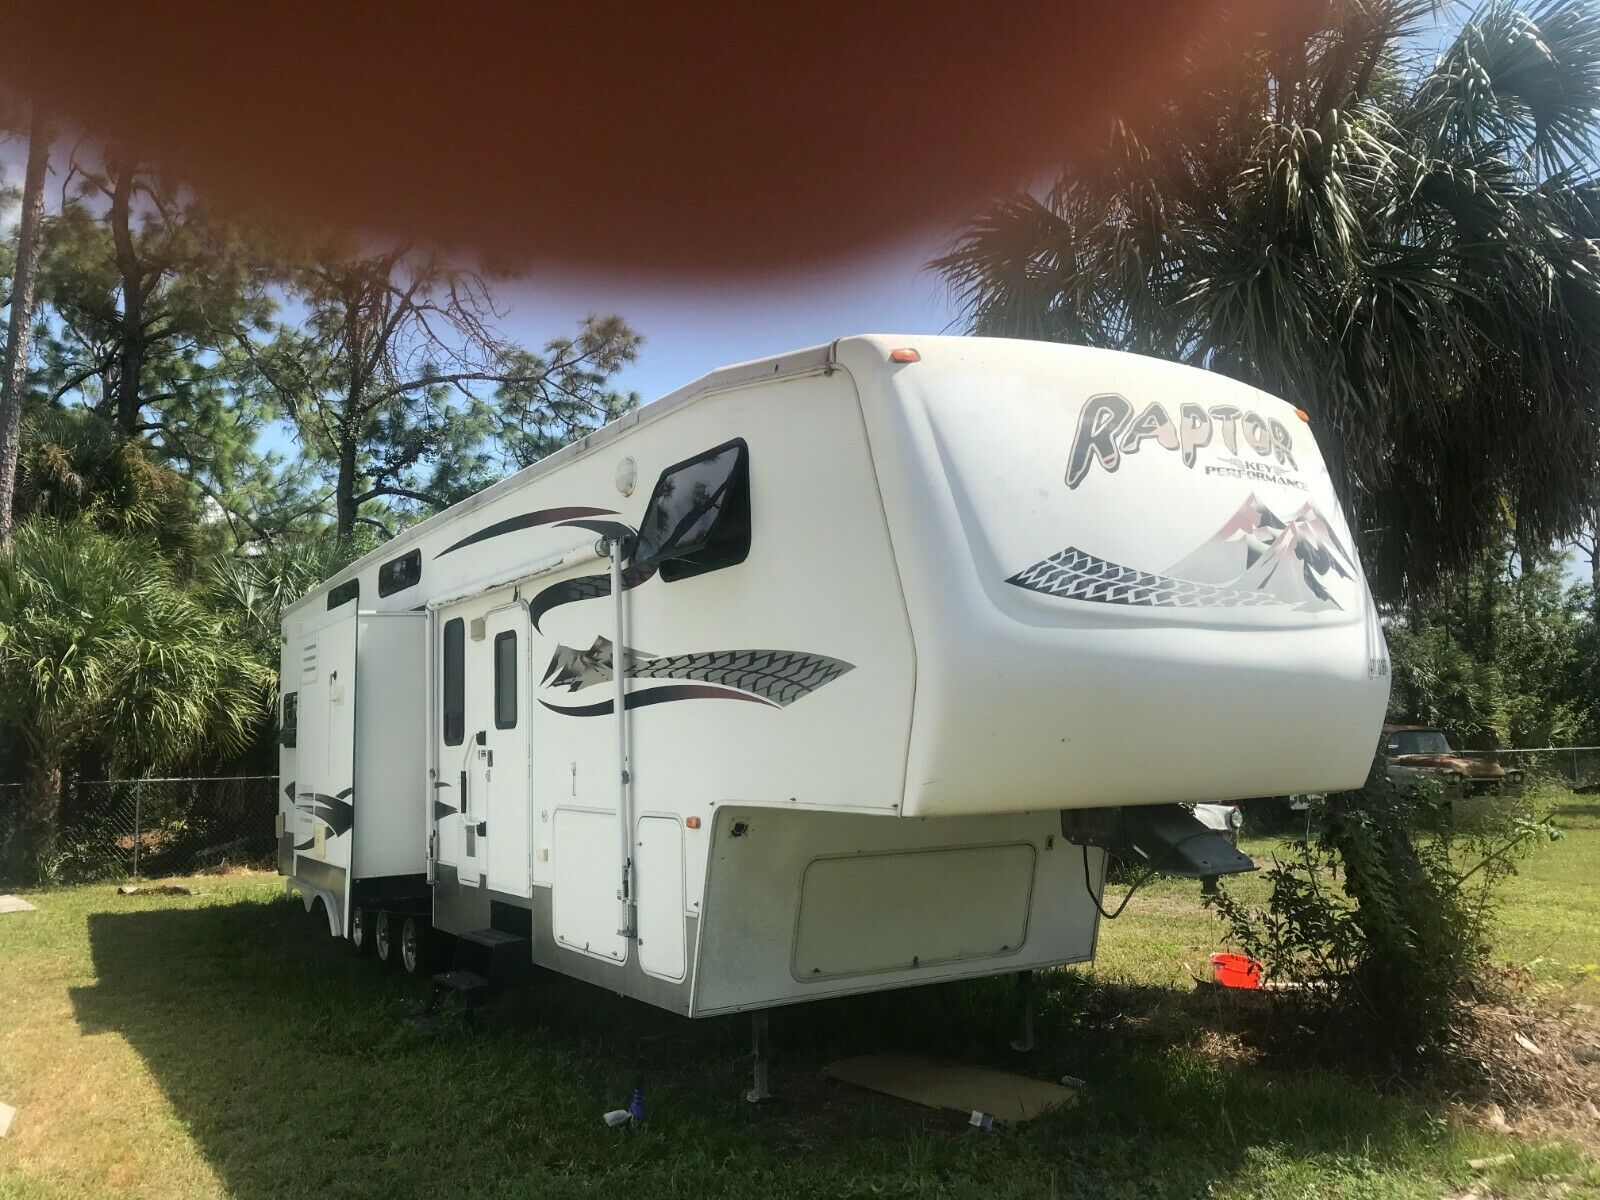 roomy 2006 Keystone RAPTOR 38 FT camper for sale